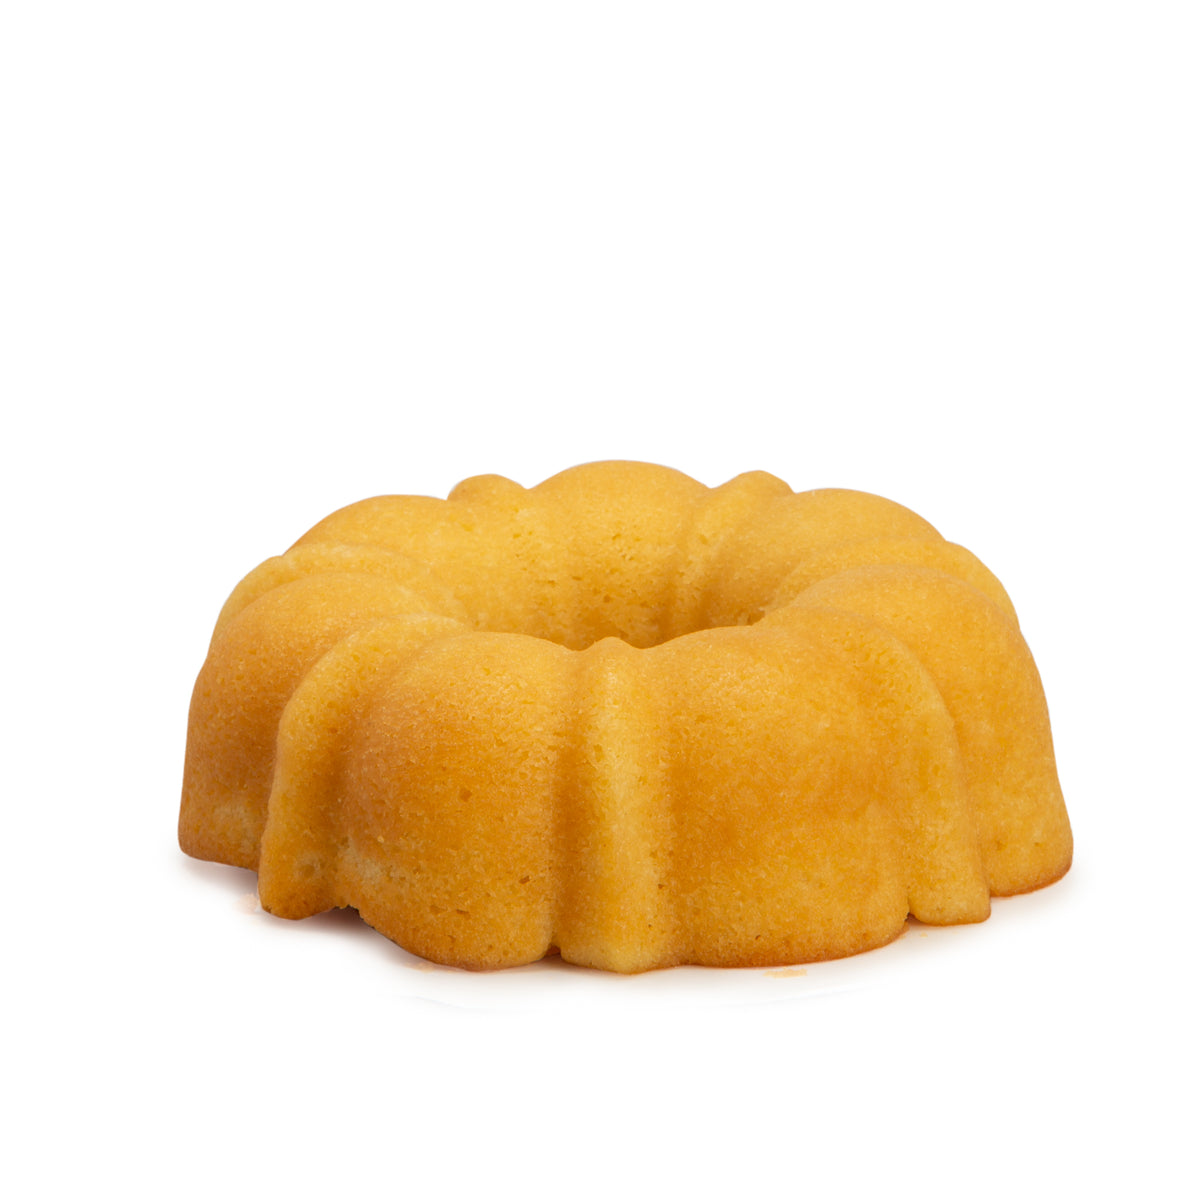 Key Largo Lemon Bundt Cake